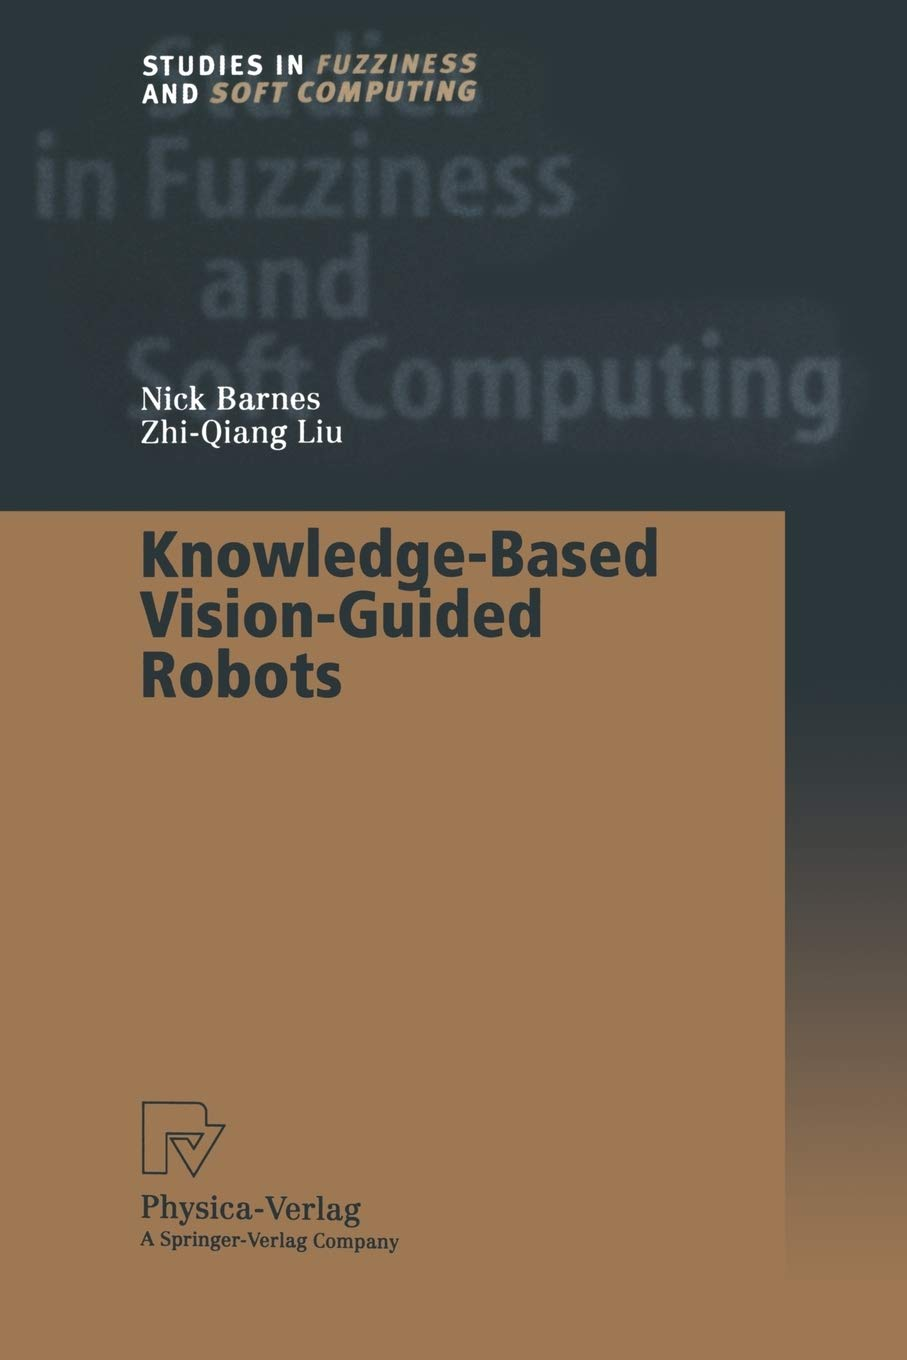 Knowledge-Based Vision-Guided Robots Studies in Fuzziness and Soft Computing: Amazon.es: Barnes, Nick, Liu, Zhi-Quiang: Libros en idiomas extranjeros